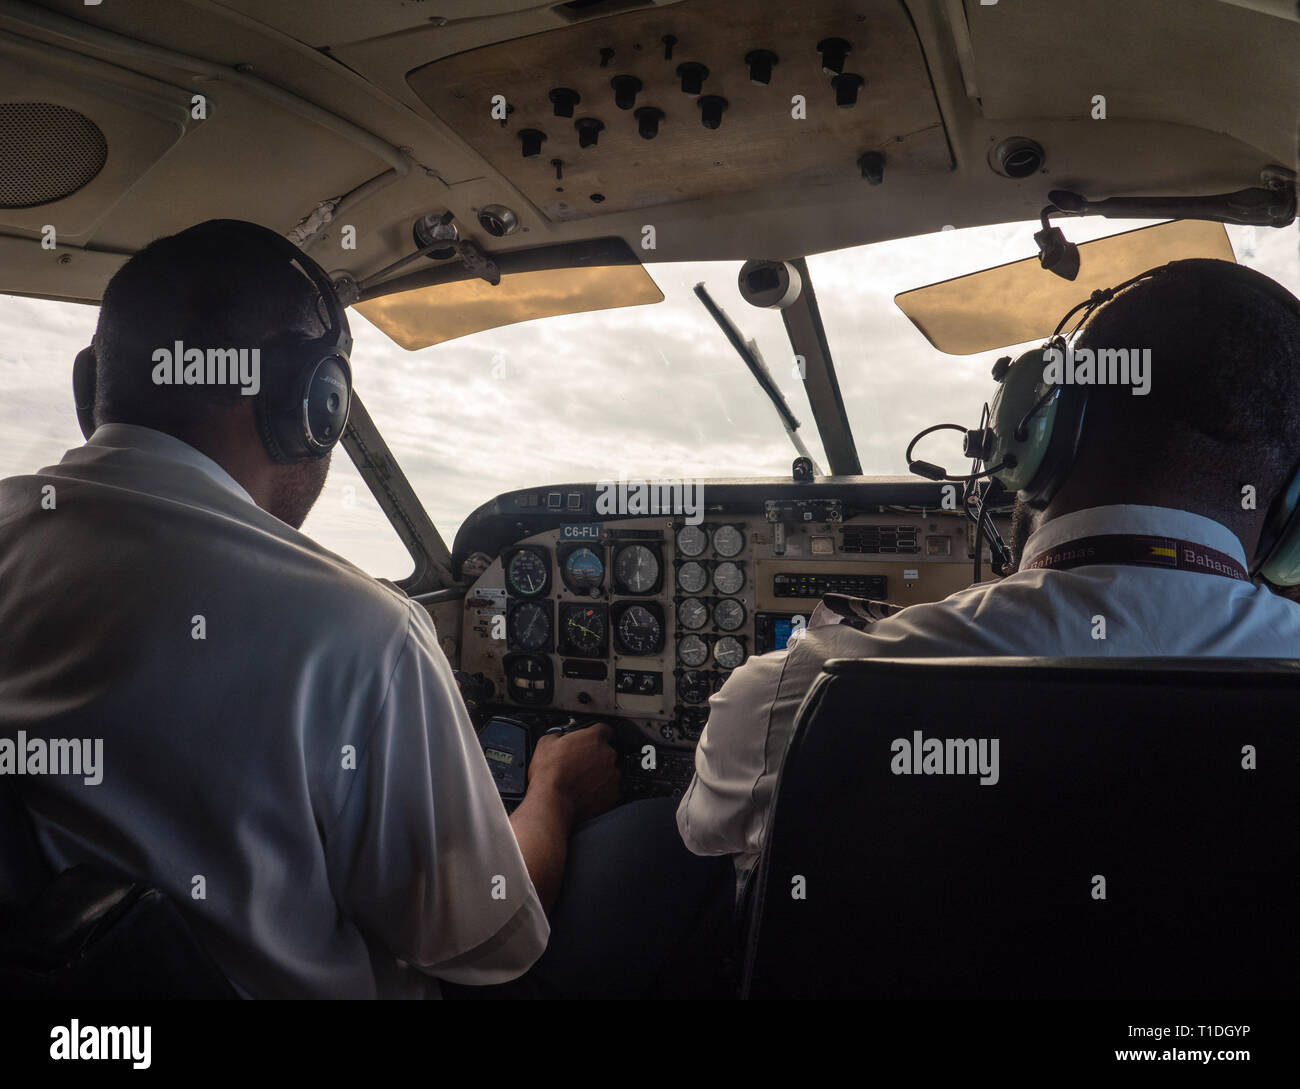 Air Pilots for Bahamas Air, Governors Harbour Airport, Eleuthera, The Bahamas, The Caribbean. - Stock Image